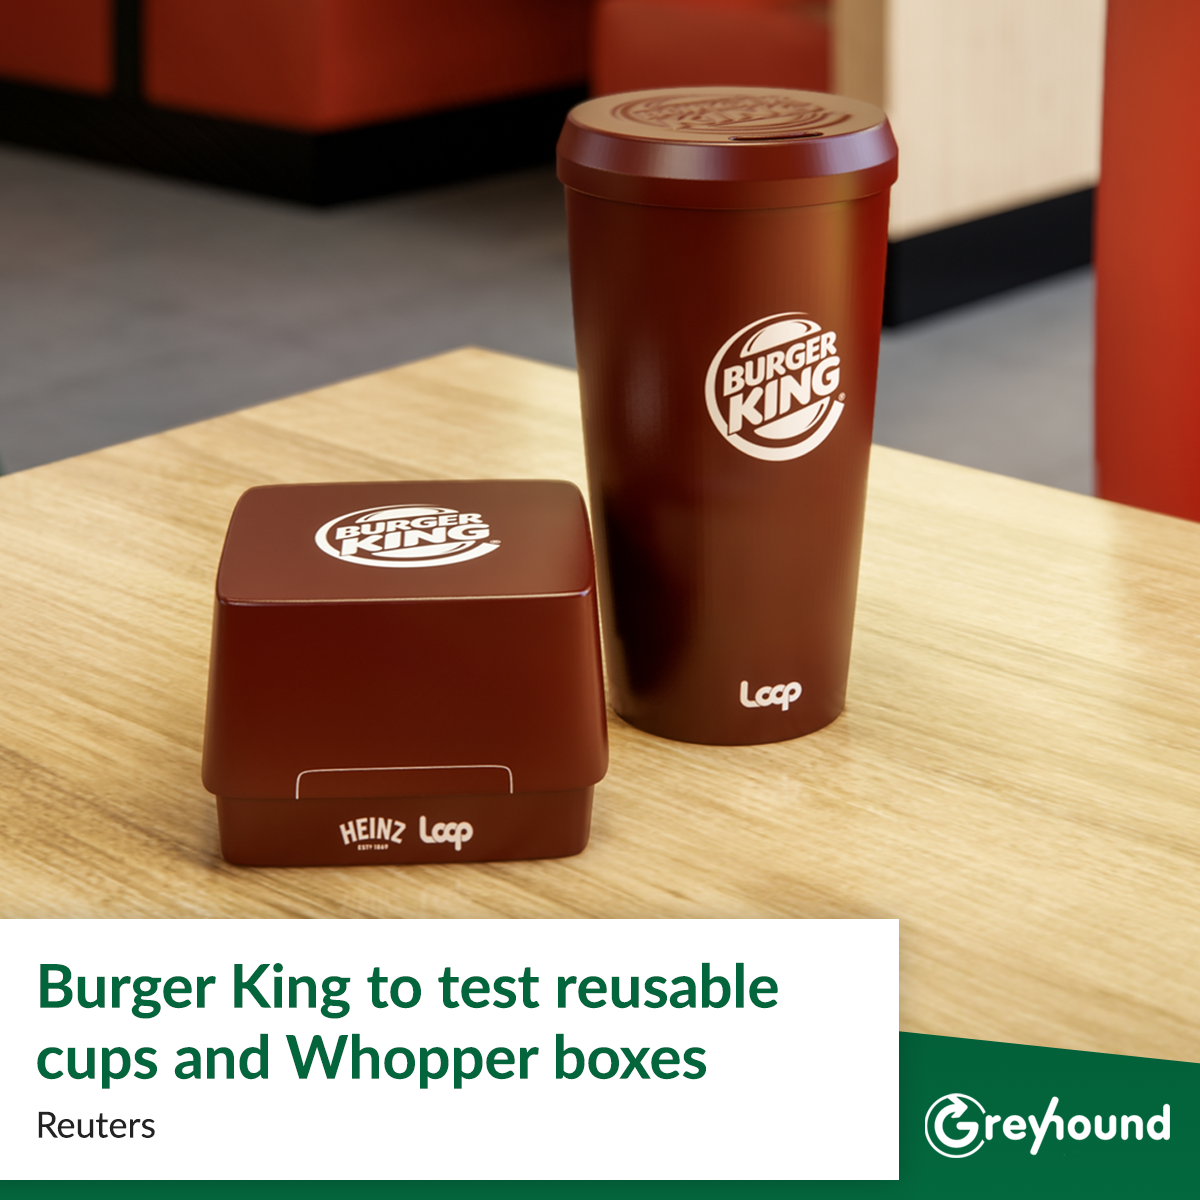 Burger King to test reusable cups and Whopper boxes